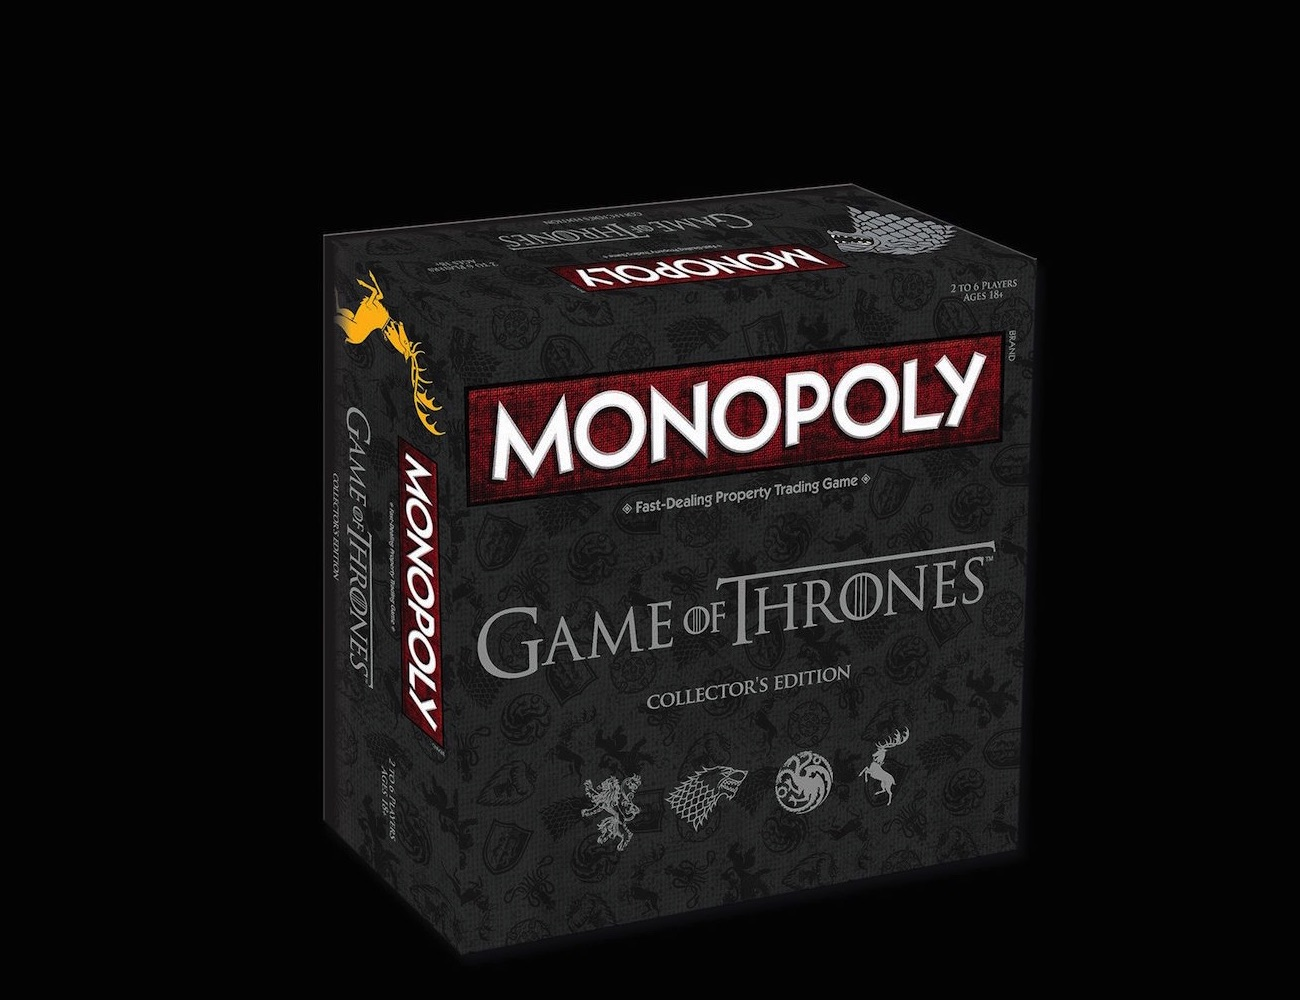 monopoly-game-of-thrones-collectors-edition-board-game-04